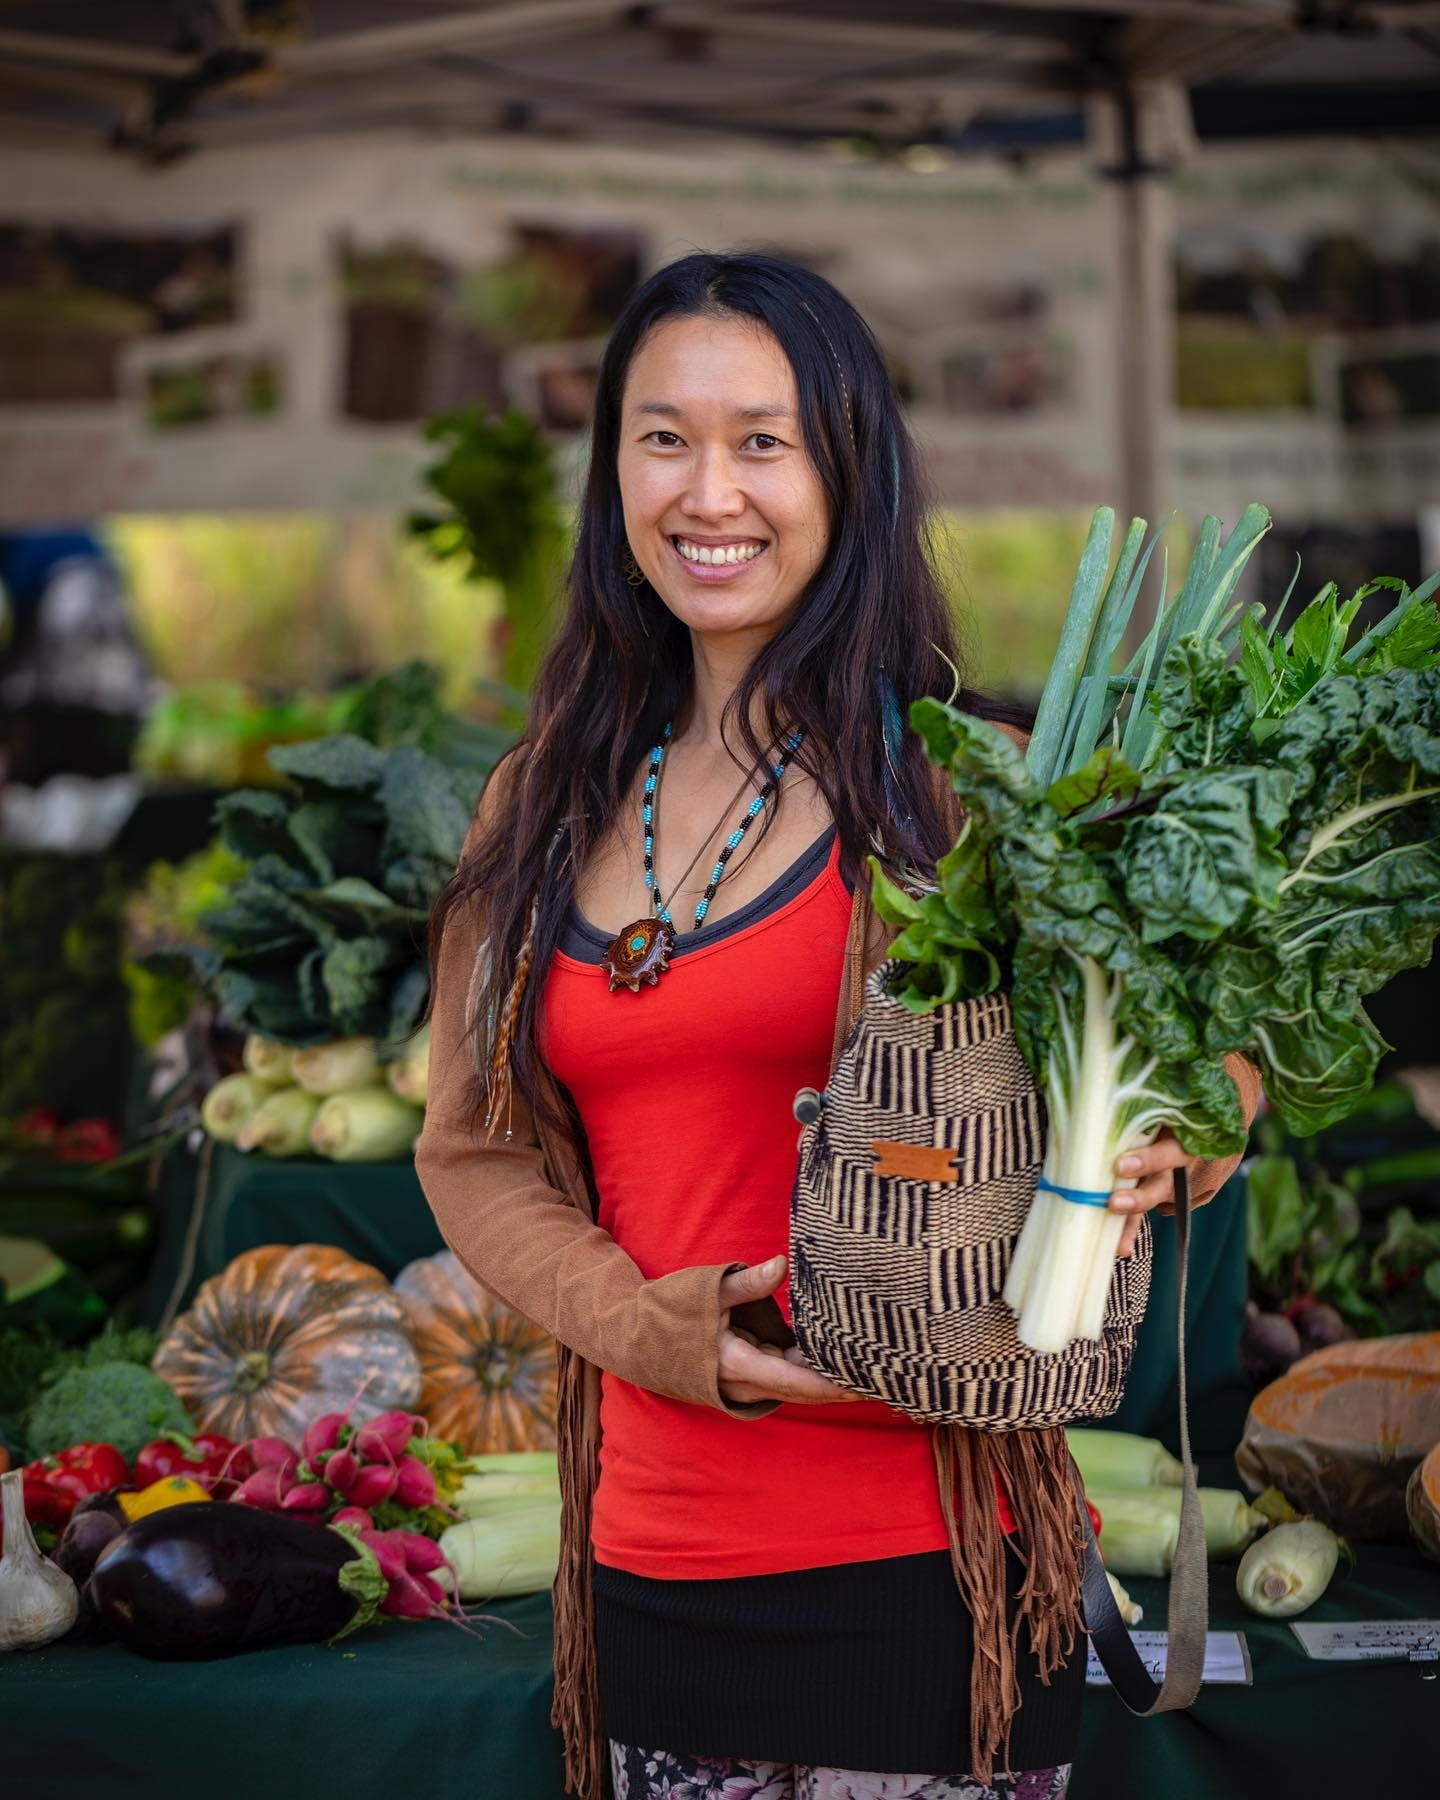 Not only can you pick up beautiful fresh produce from @shambhalafarm @noosafarmersmarkets you can also grab a copy of @cooknoosa cookbook from the Shambhala Farm stall every Sunday at Noosa Farmers Markets.  Cook Noosa cookbook features a seasonal vegetable stir fry recipe with cashew nuts by Shambhala Farm.  #noosa #cooknoosa #noosacookbook #noosafarmersmarkets 📸 @emma_jane_sheldrake for @cooknoosa